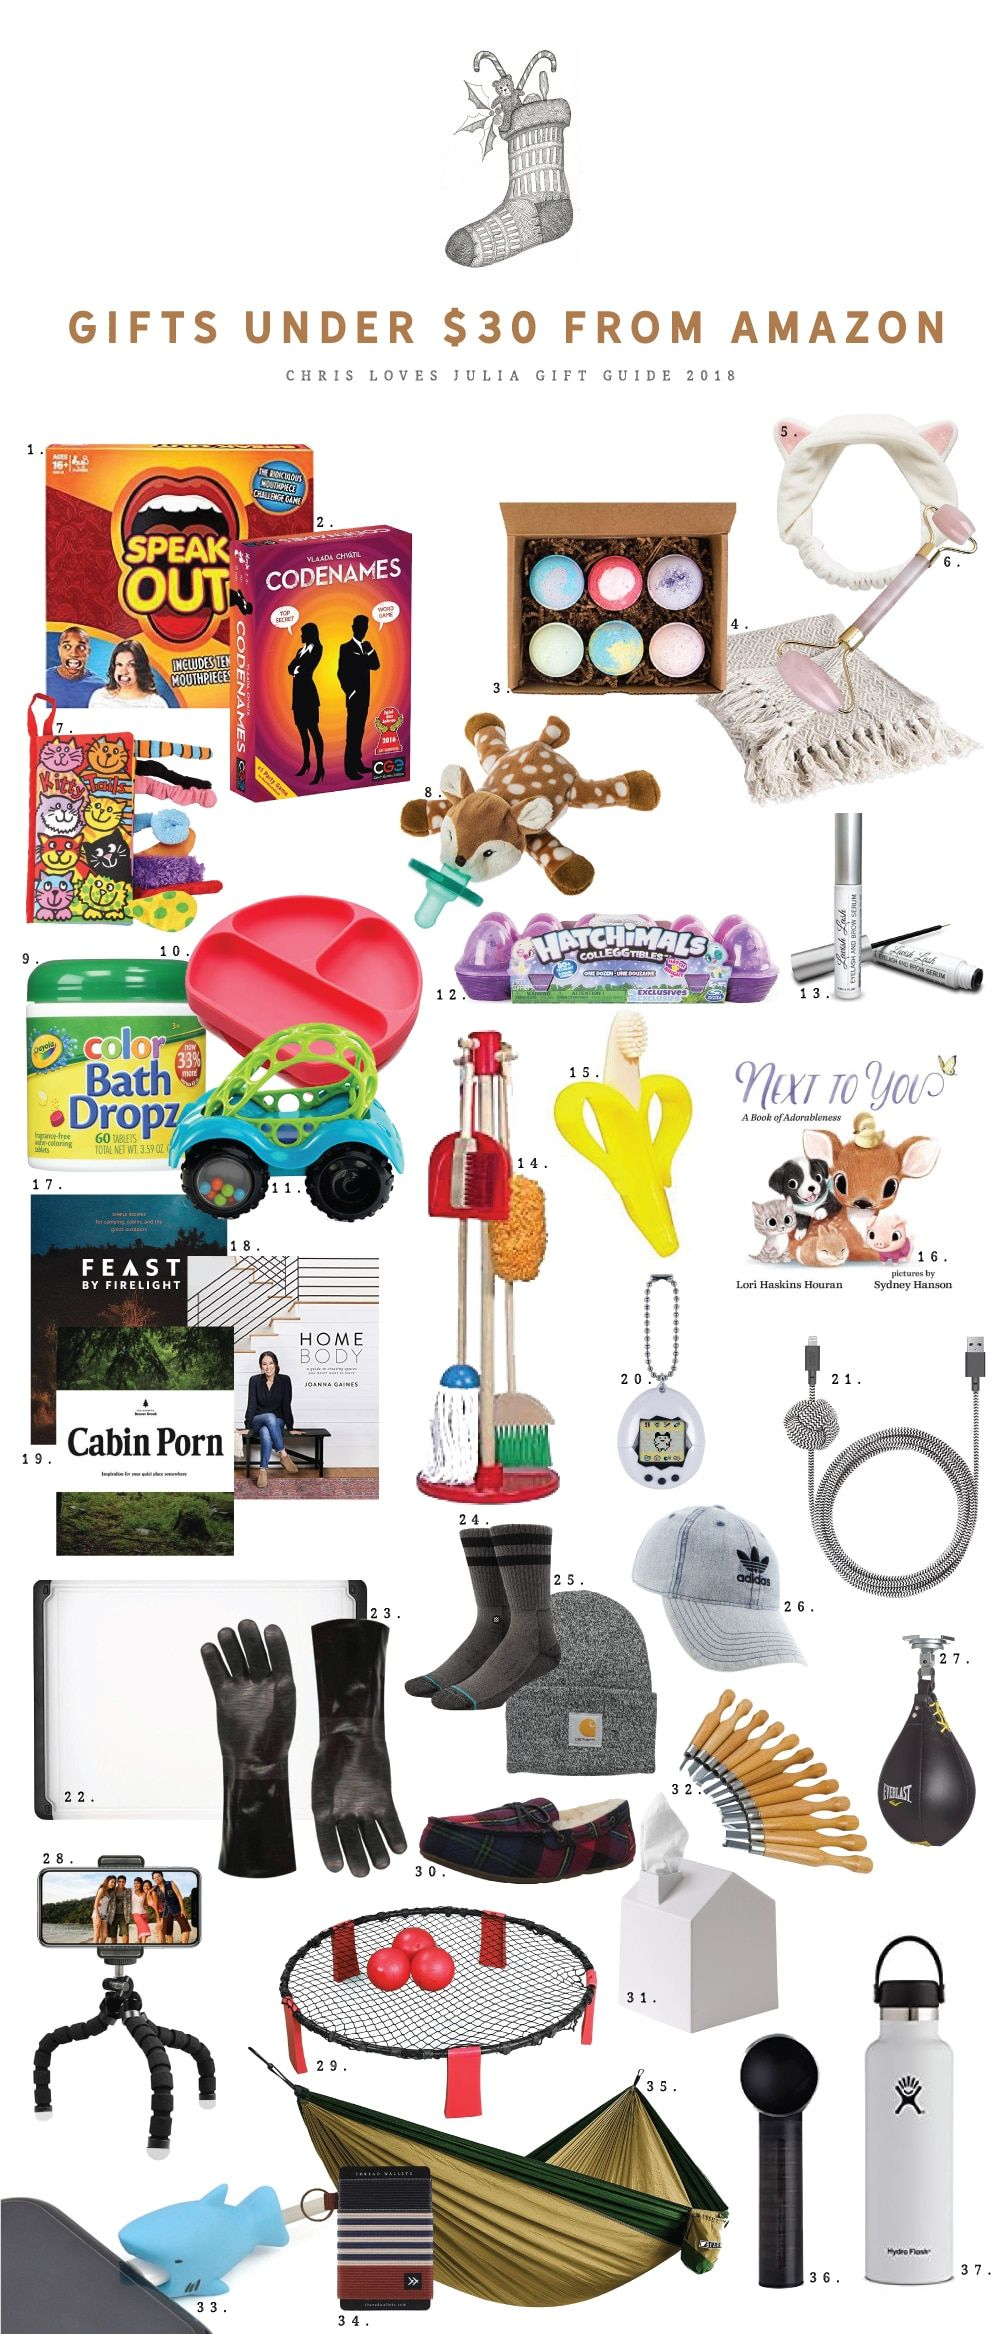 2018 clj gift guide gifts under 30 from amazon gifts